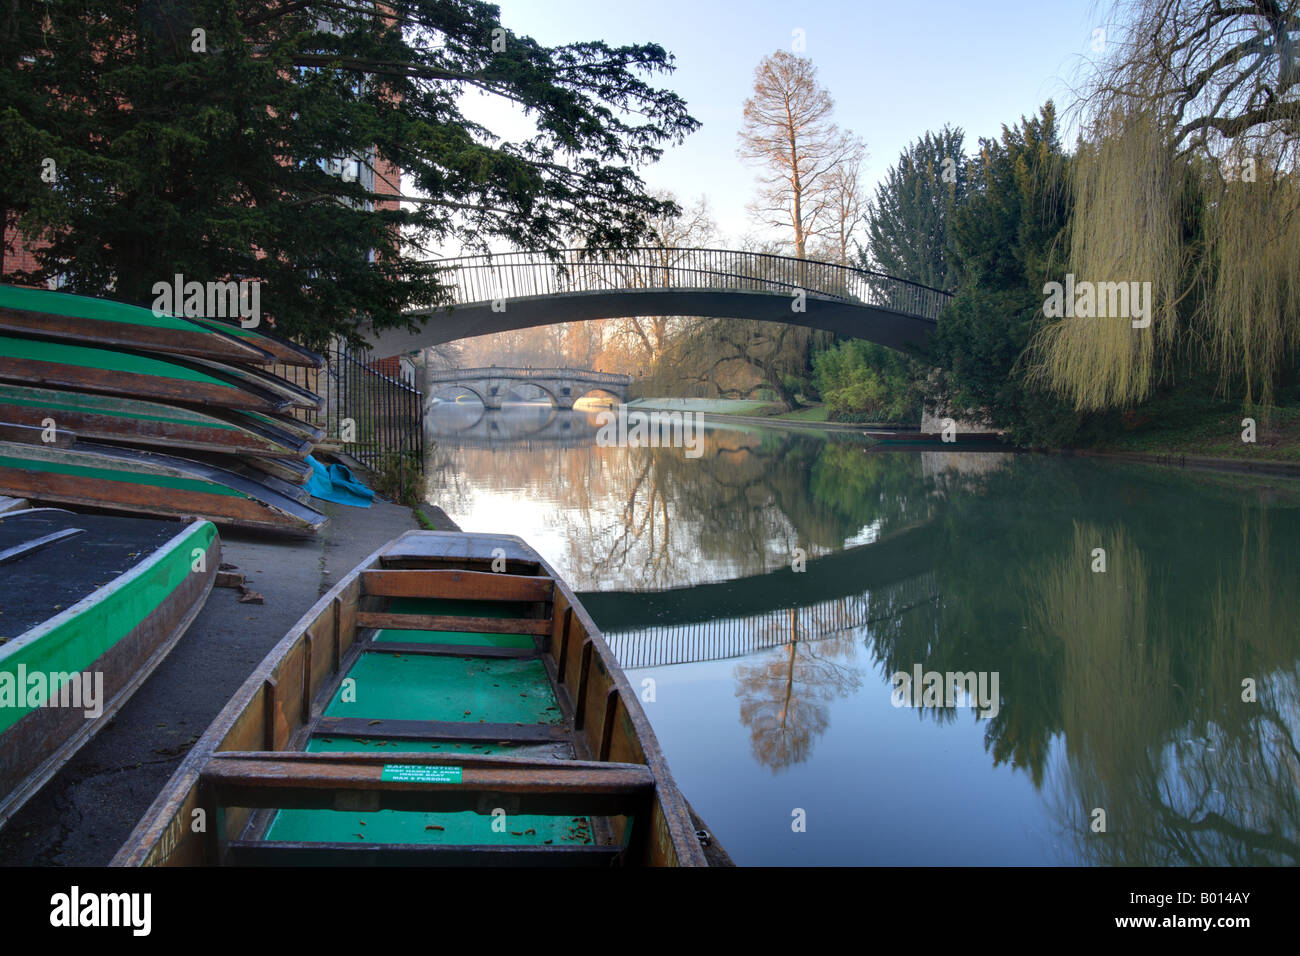 Punts at Trinity College Cambridge, River Cam and the bridges. - Stock Image